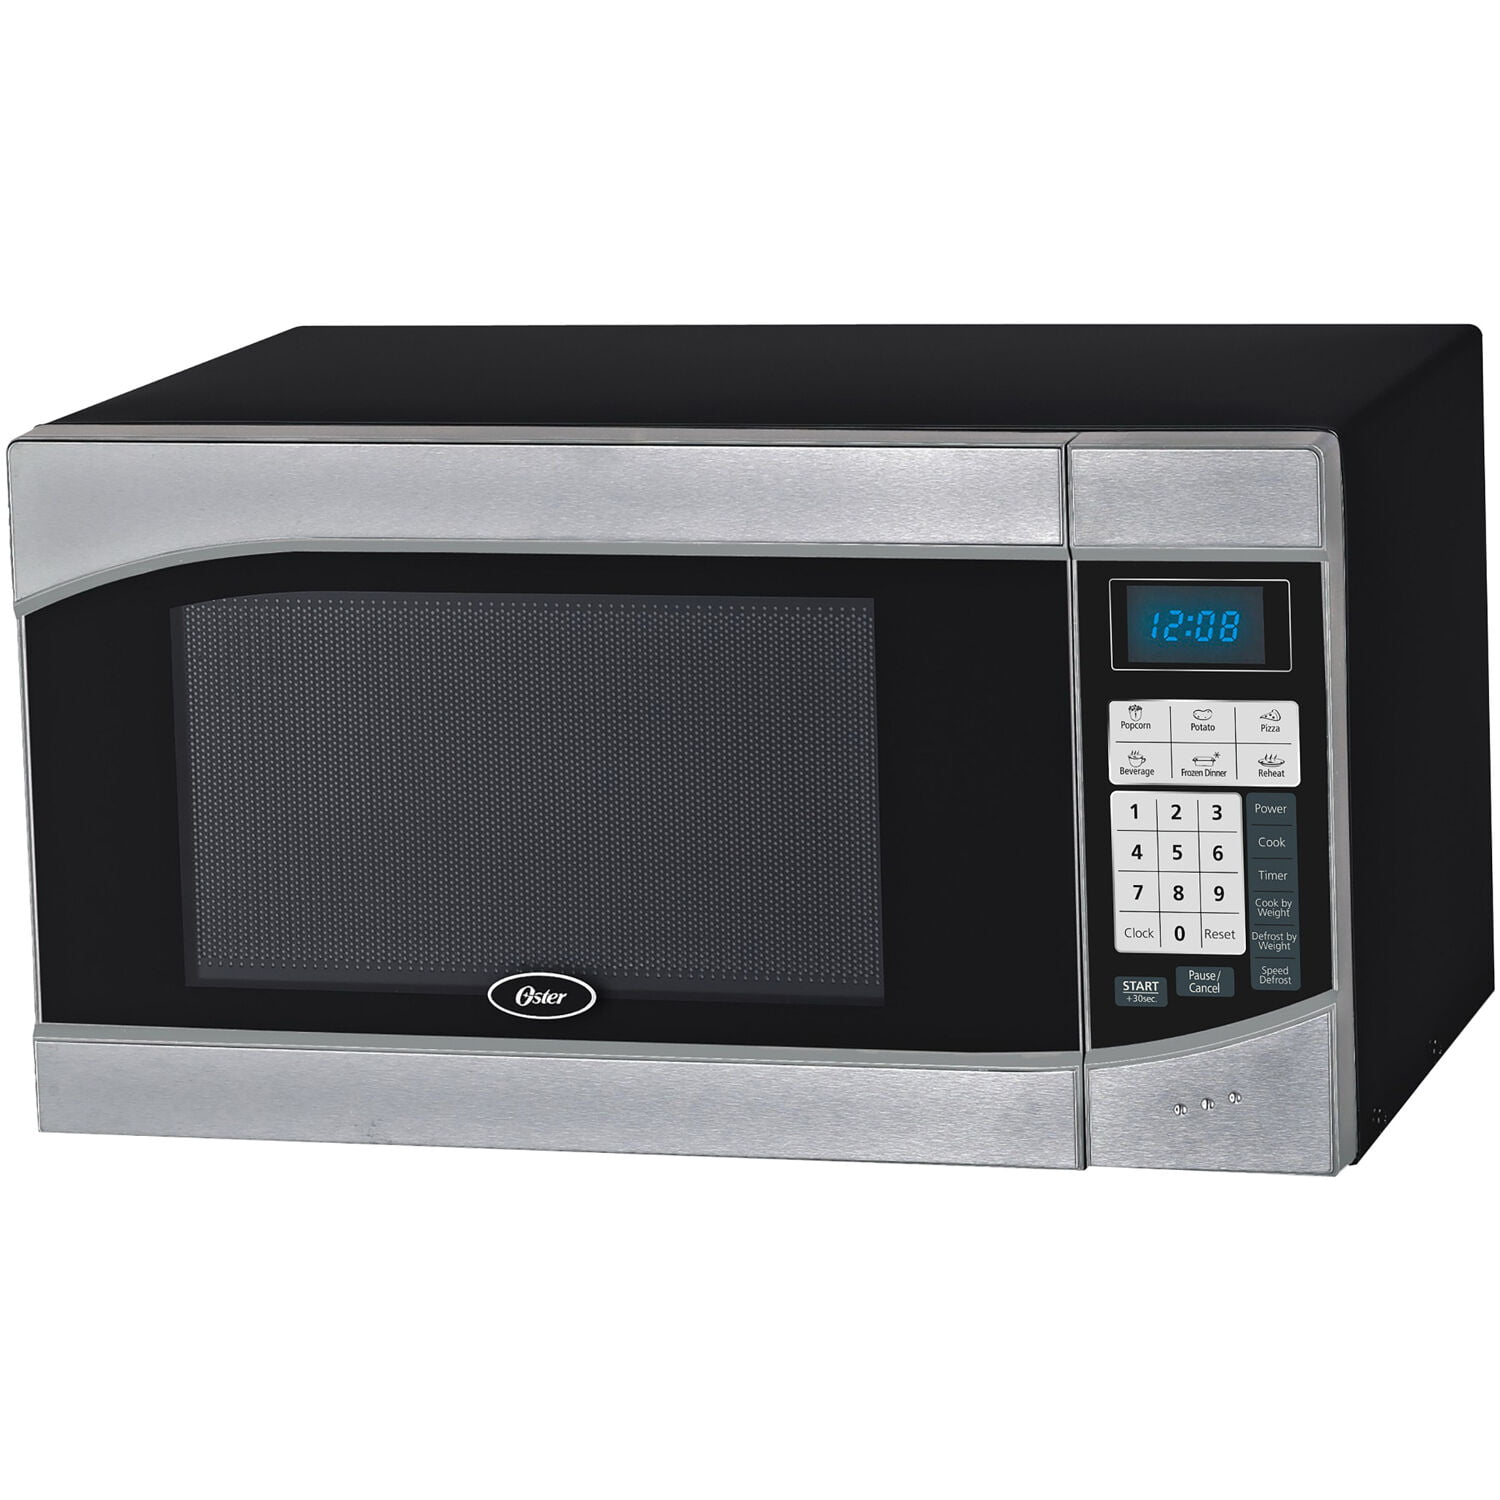 Oster Compact Size 0 9 Cu Ft 900w Countertop Microwave Oven With Stainless Steel Door Trim Walmart Com